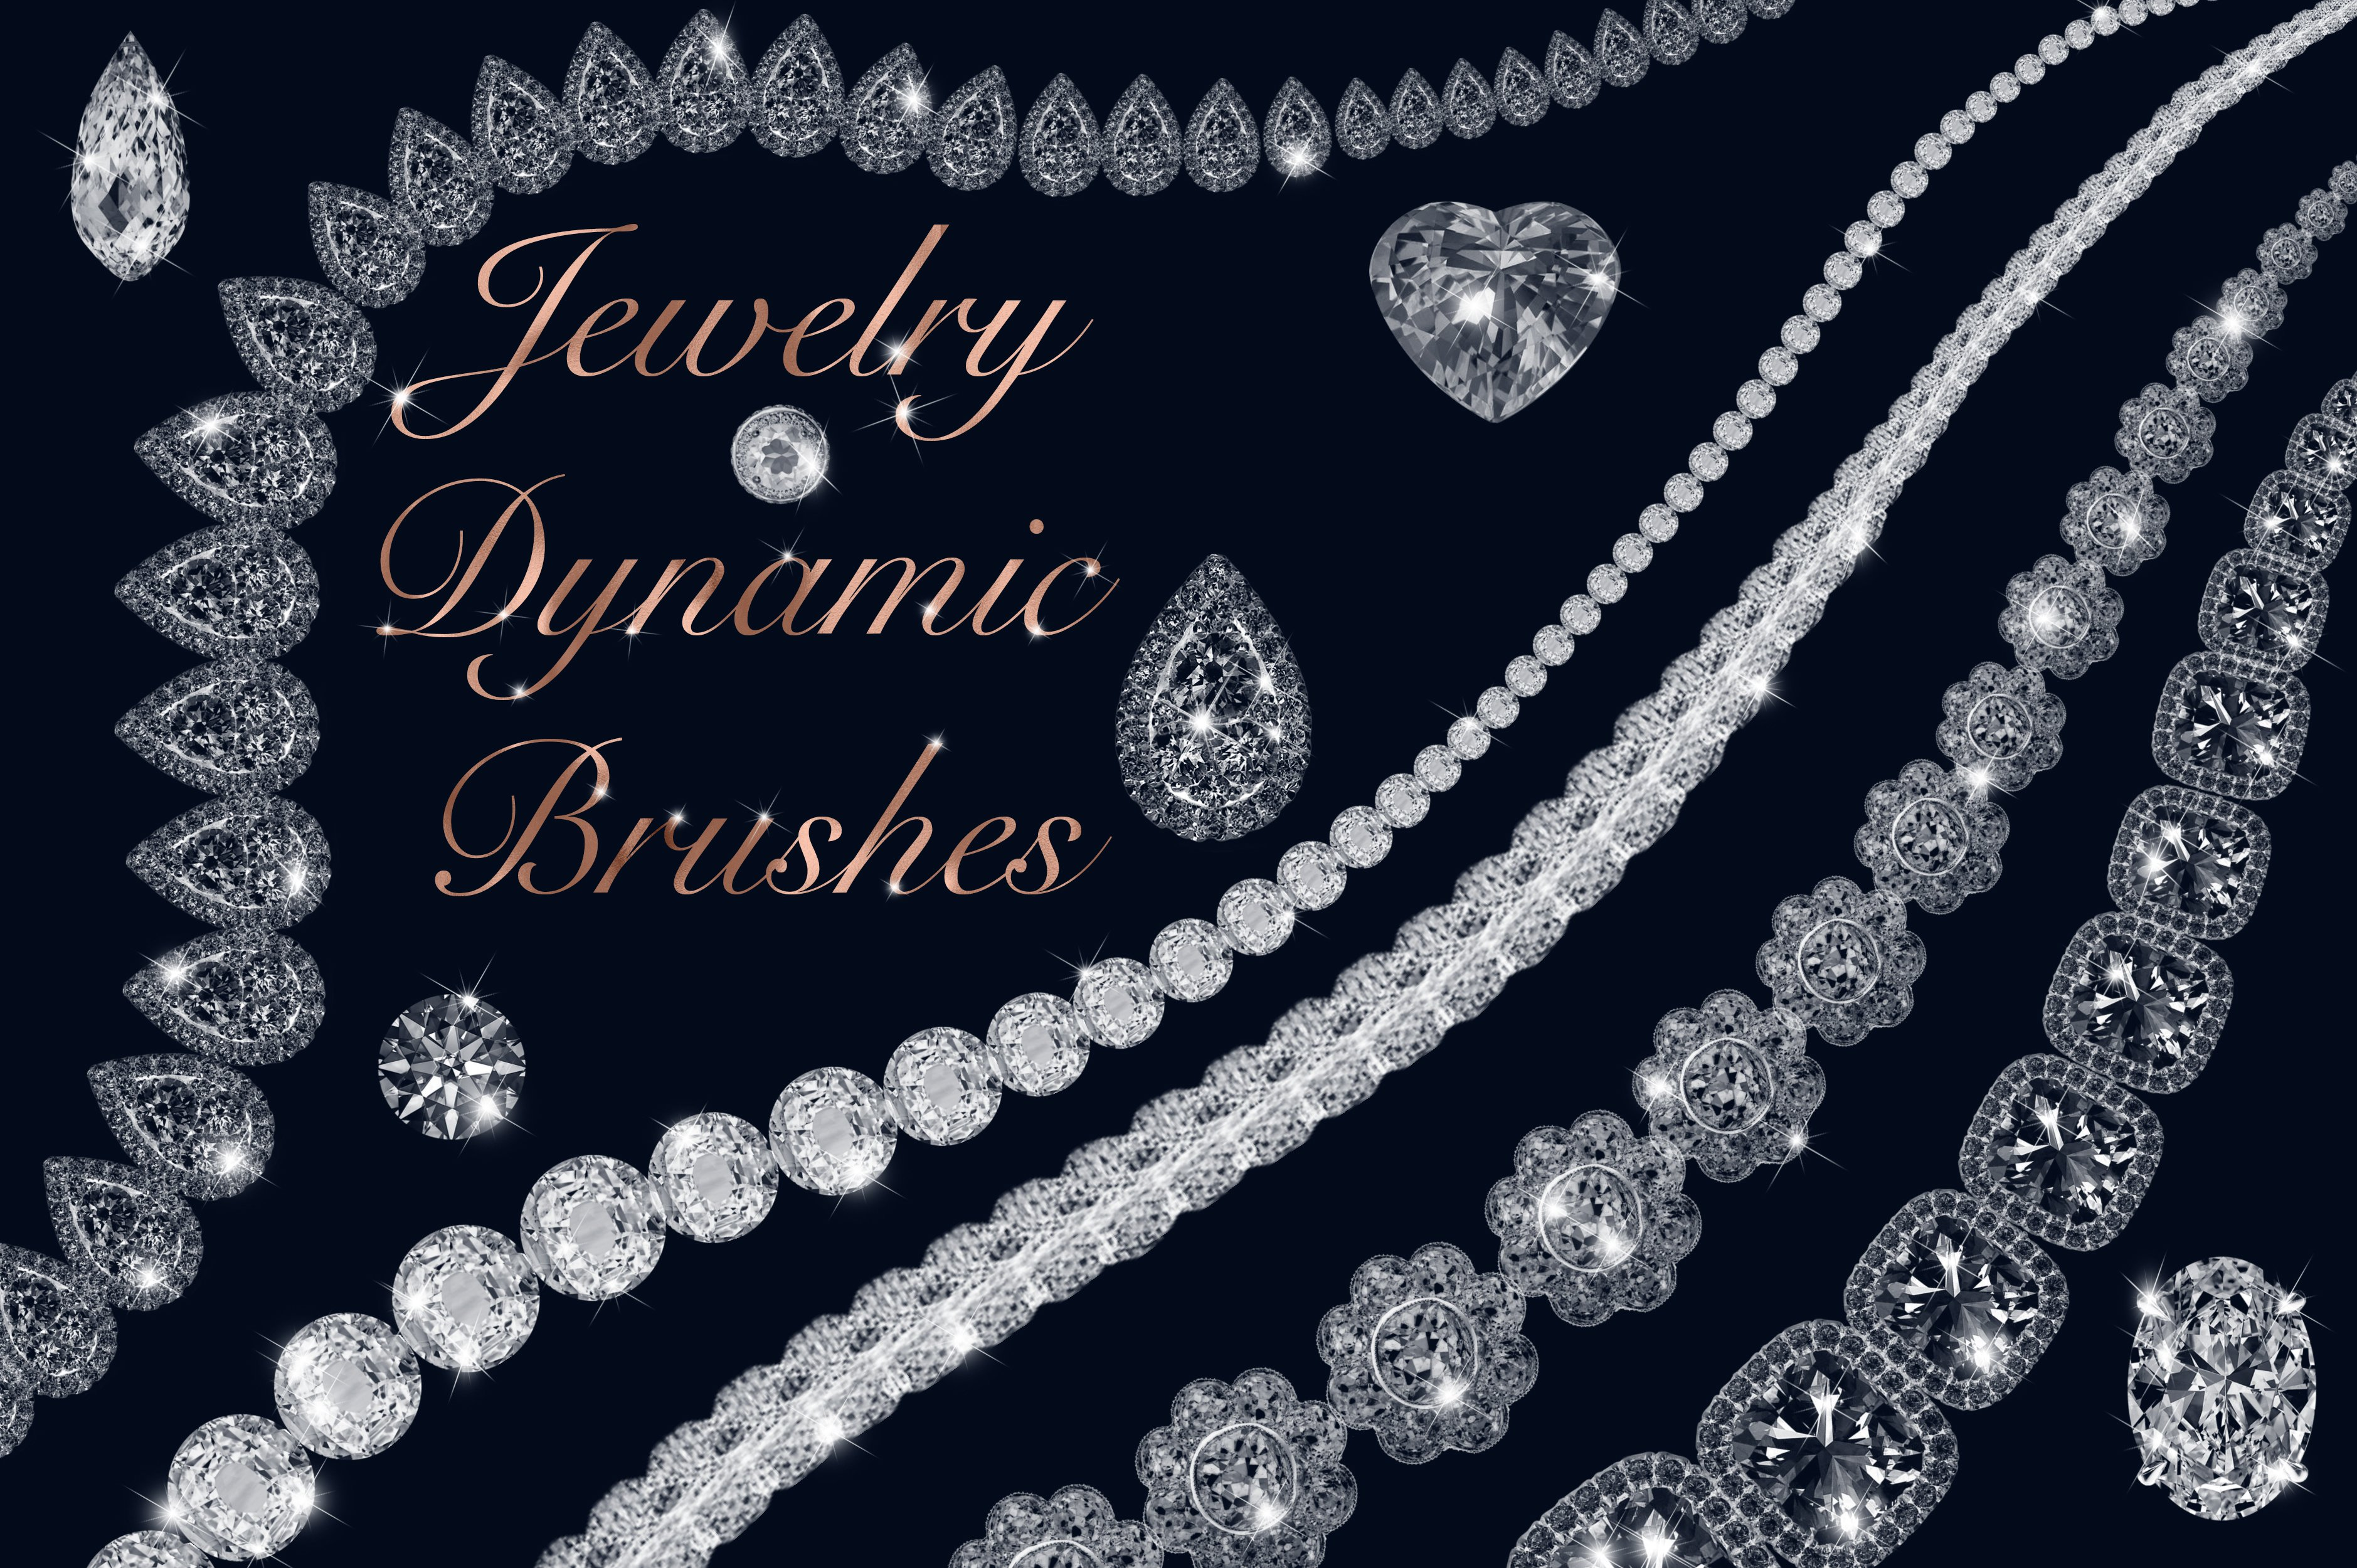 Jewelry Dynamic Brushes ~ Photoshop Add-Ons ~ Creative Market